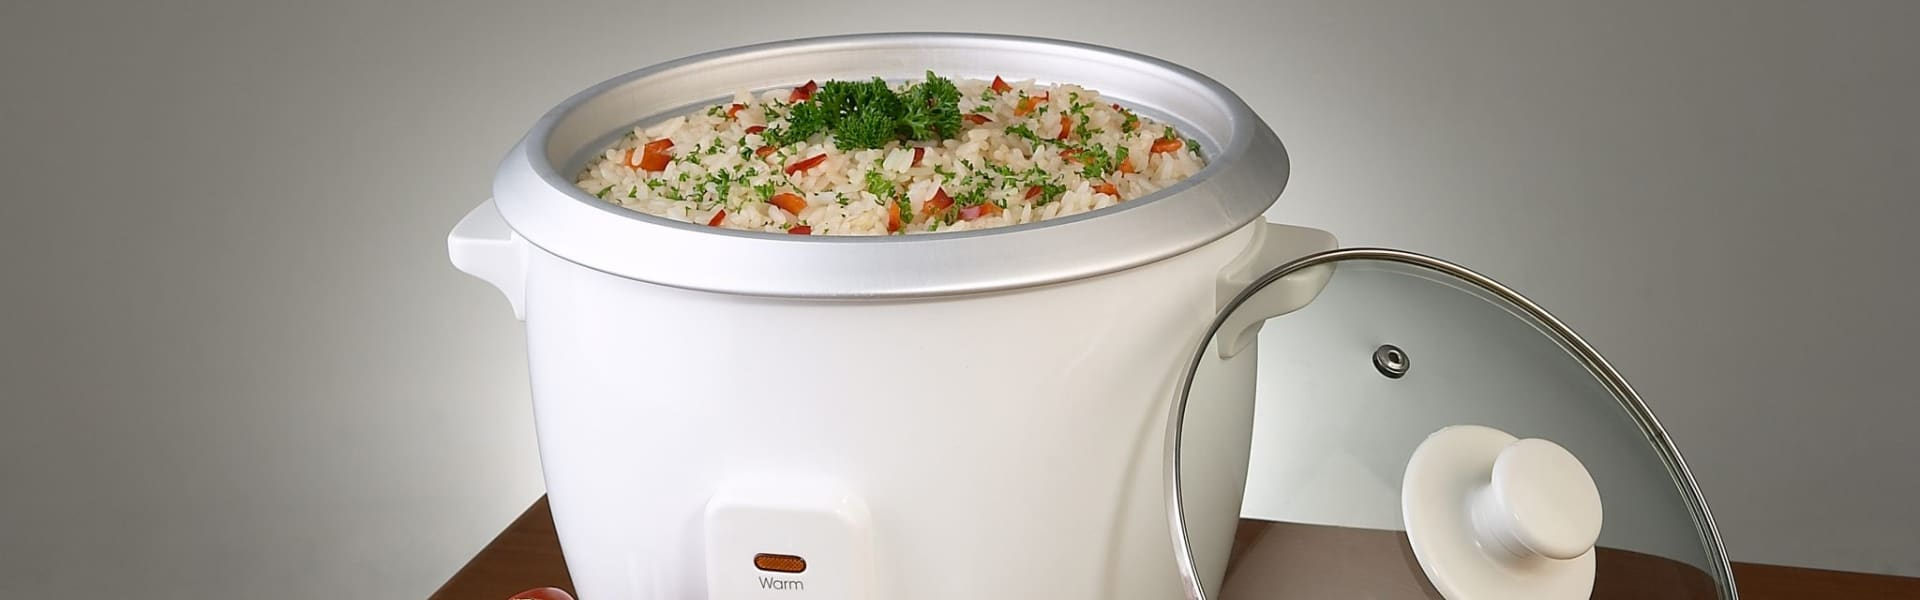 Best Stainless Steel Rice Cookers